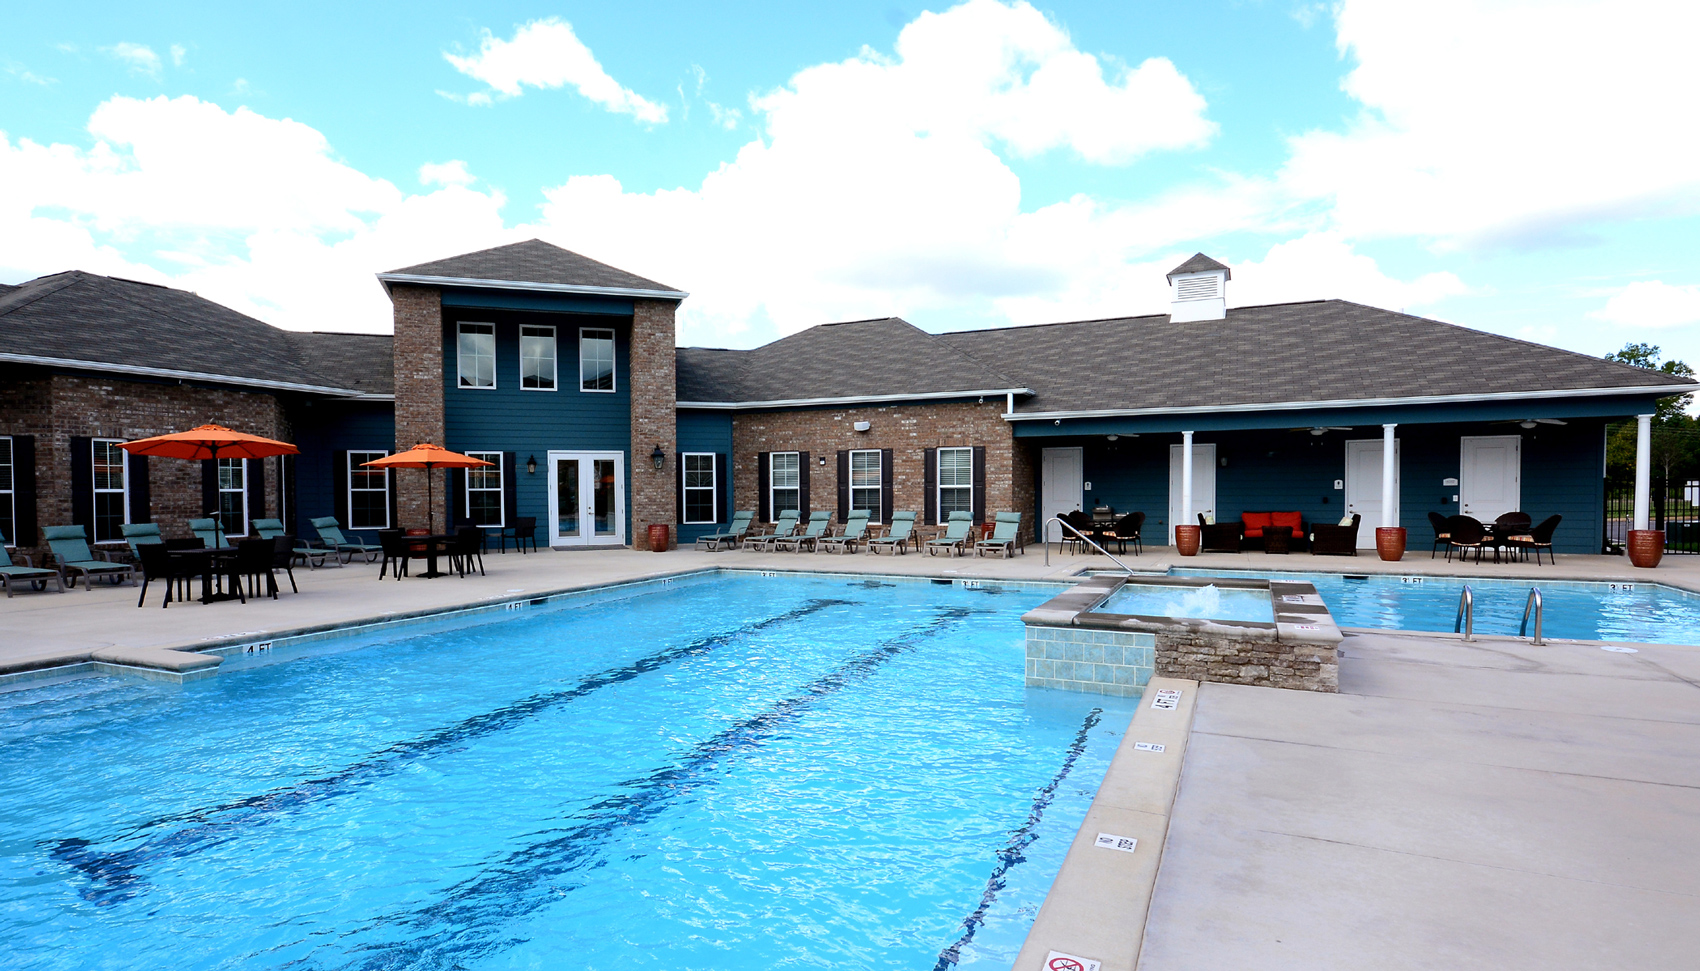 Ardmore-Howell-Road-Apartments-Greenville-Pool-2